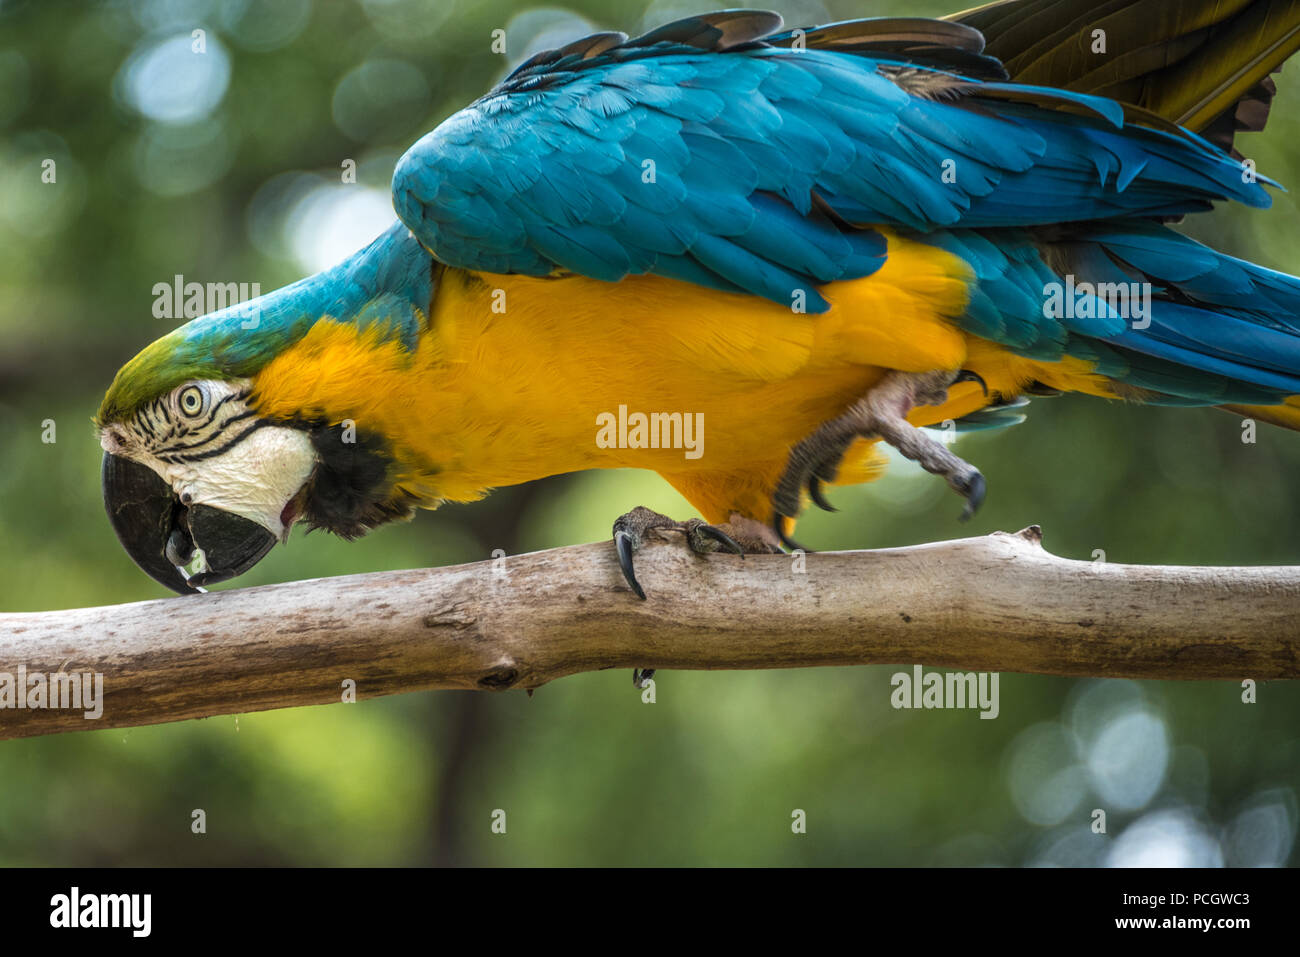 A vibrant blue-and-yellow macaw (also known as a blue-and-gold macaw) at the St. Augustine Alligator Farm Zoological Park in St. Augustine, FL. (USA) - Stock Image